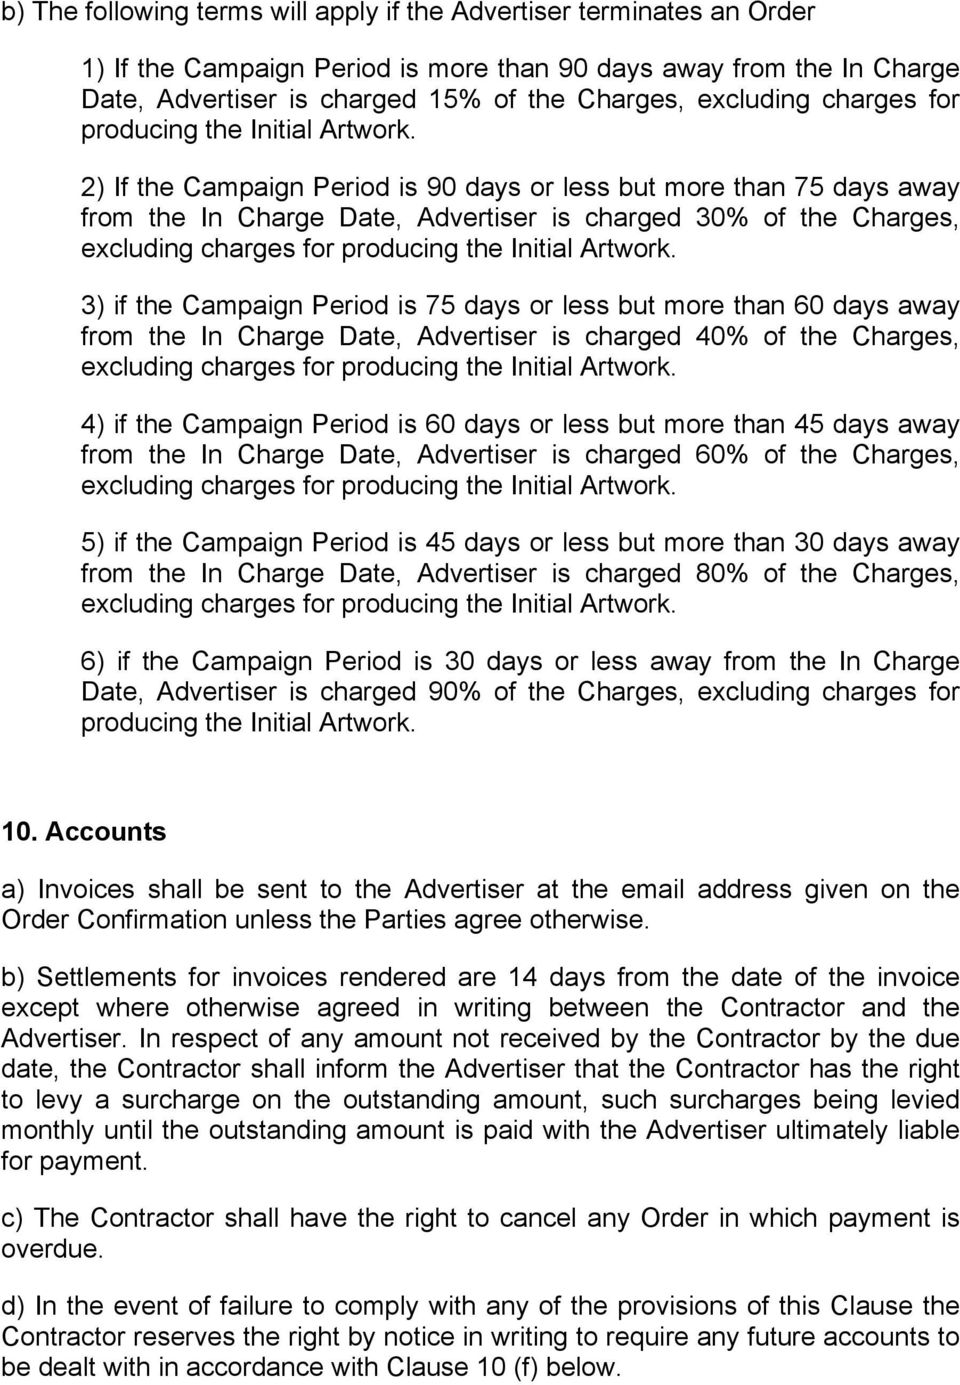 2) If the Campaign Period is 90 days or less but more than 75 days away from the In Charge Date, Advertiser is charged 30% of the Charges,  3) if the Campaign Period is 75 days or less but more than